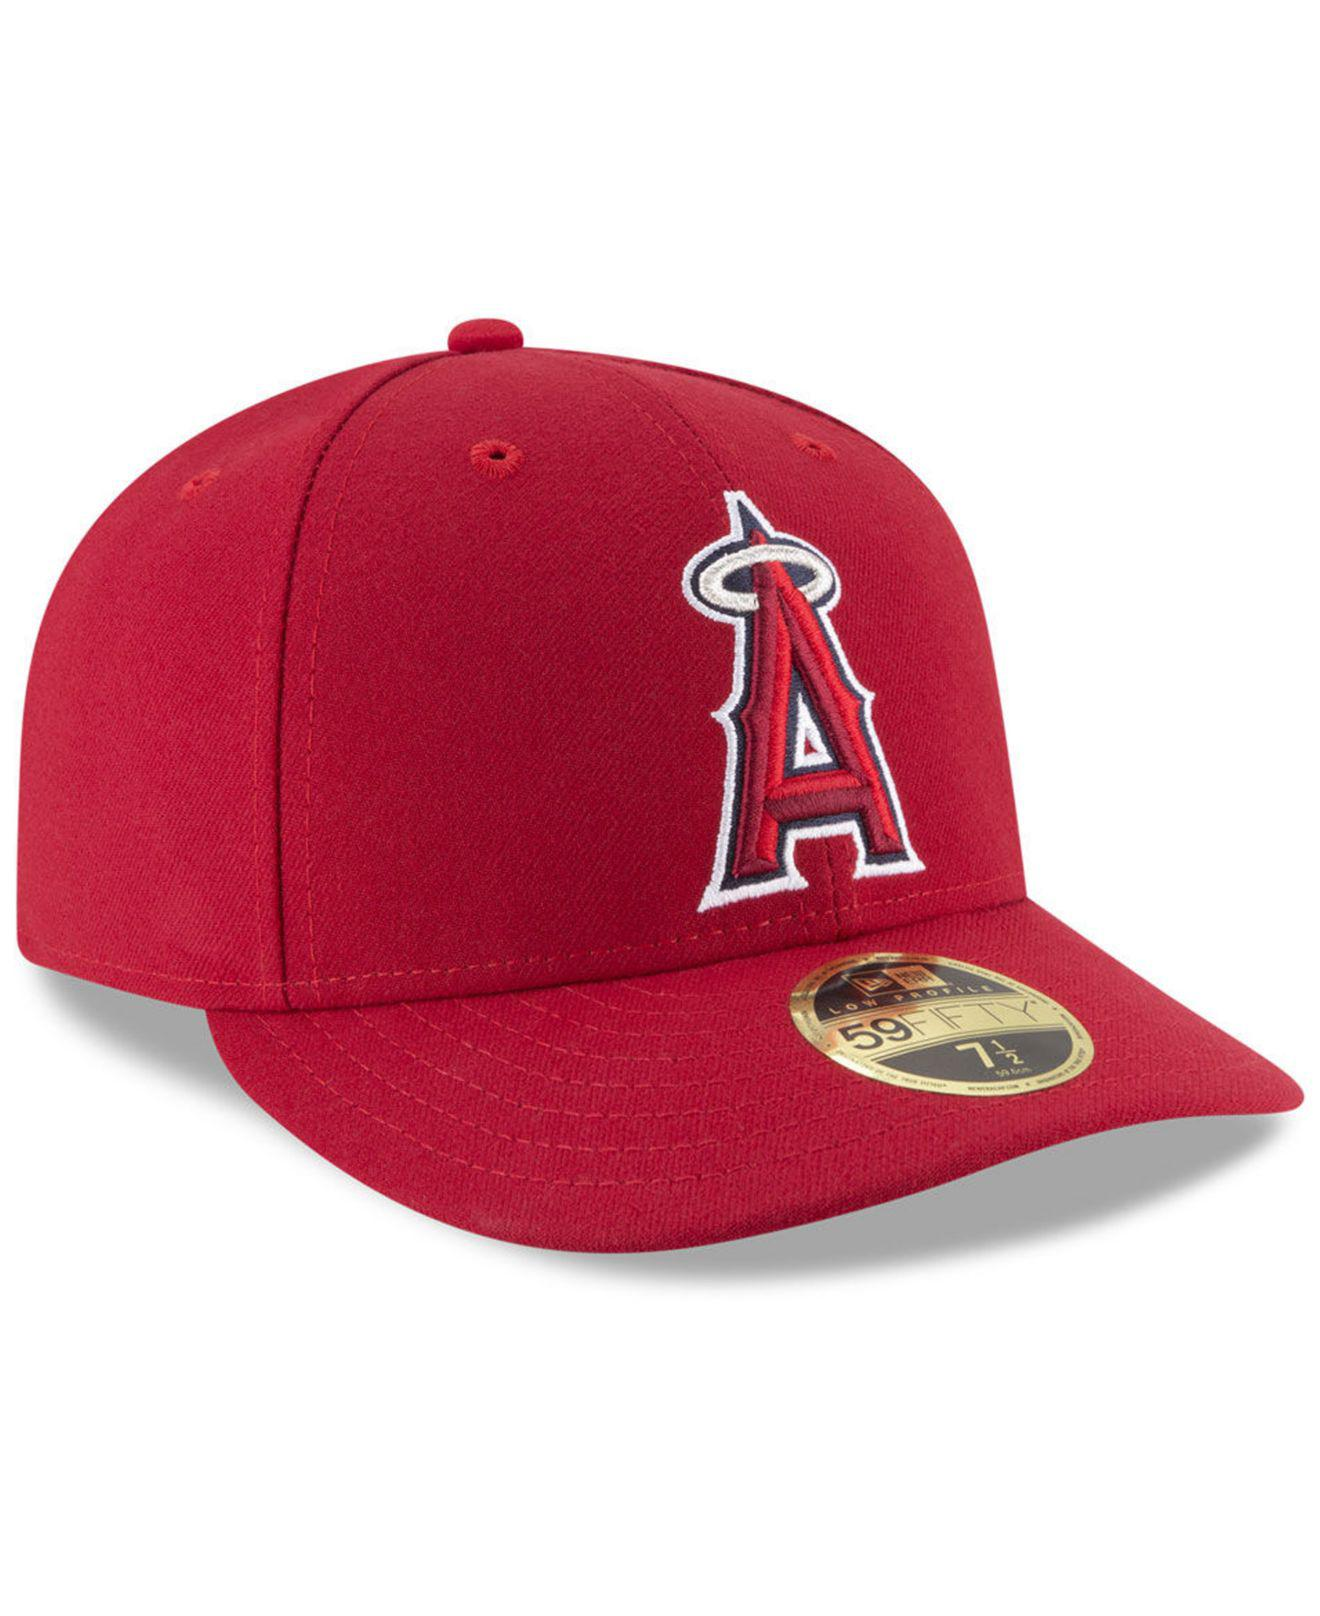 best website eeb58 9fcf6 Lyst - KTZ Los Angeles Angels Low Profile Ac Performance 59fifty Fitted Cap  in Red for Men - Save 5%